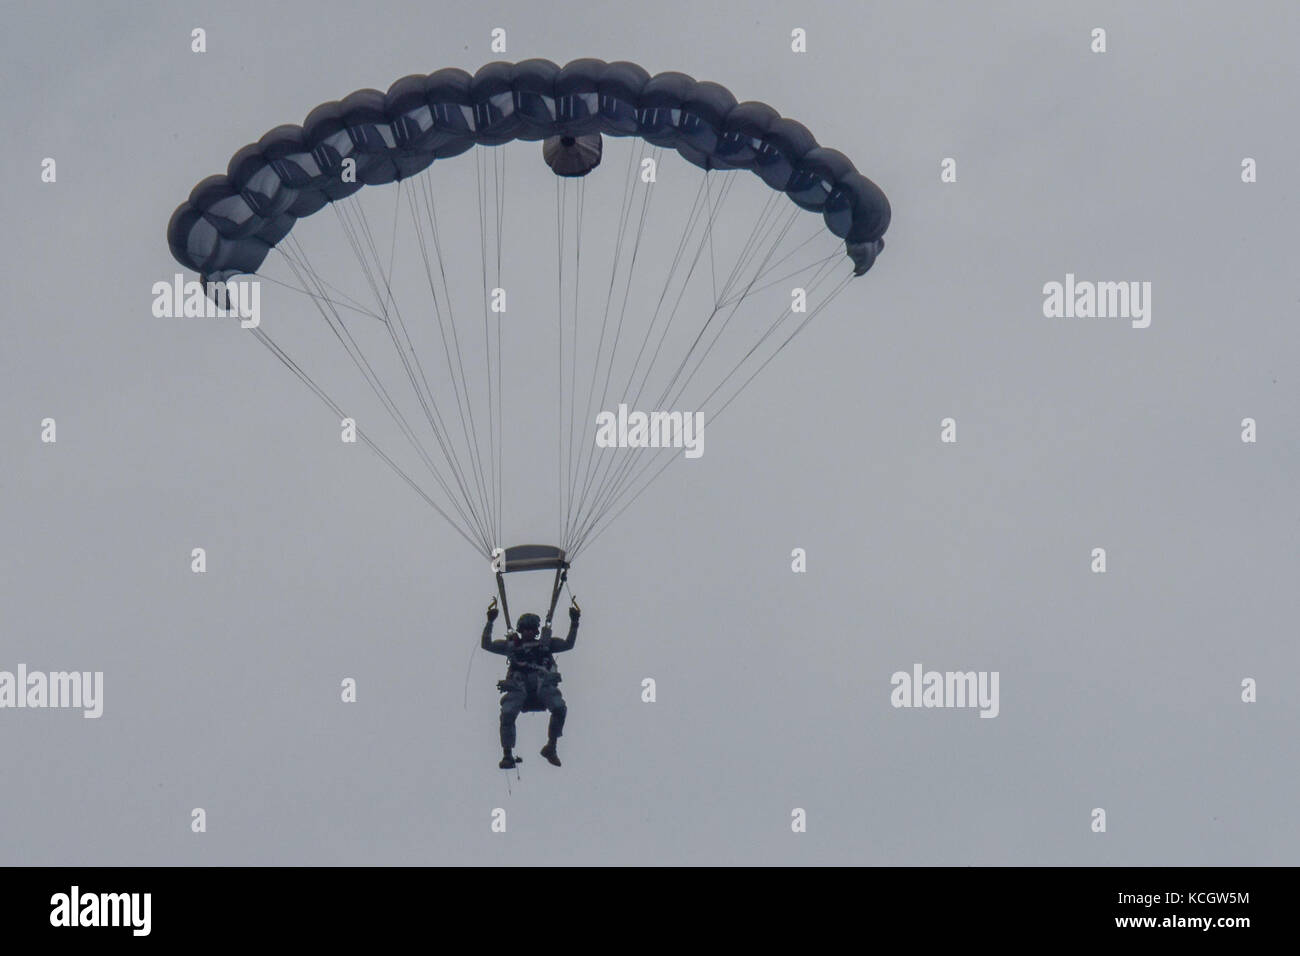 A member from the Colombian Air Force Parachute Team, Gules